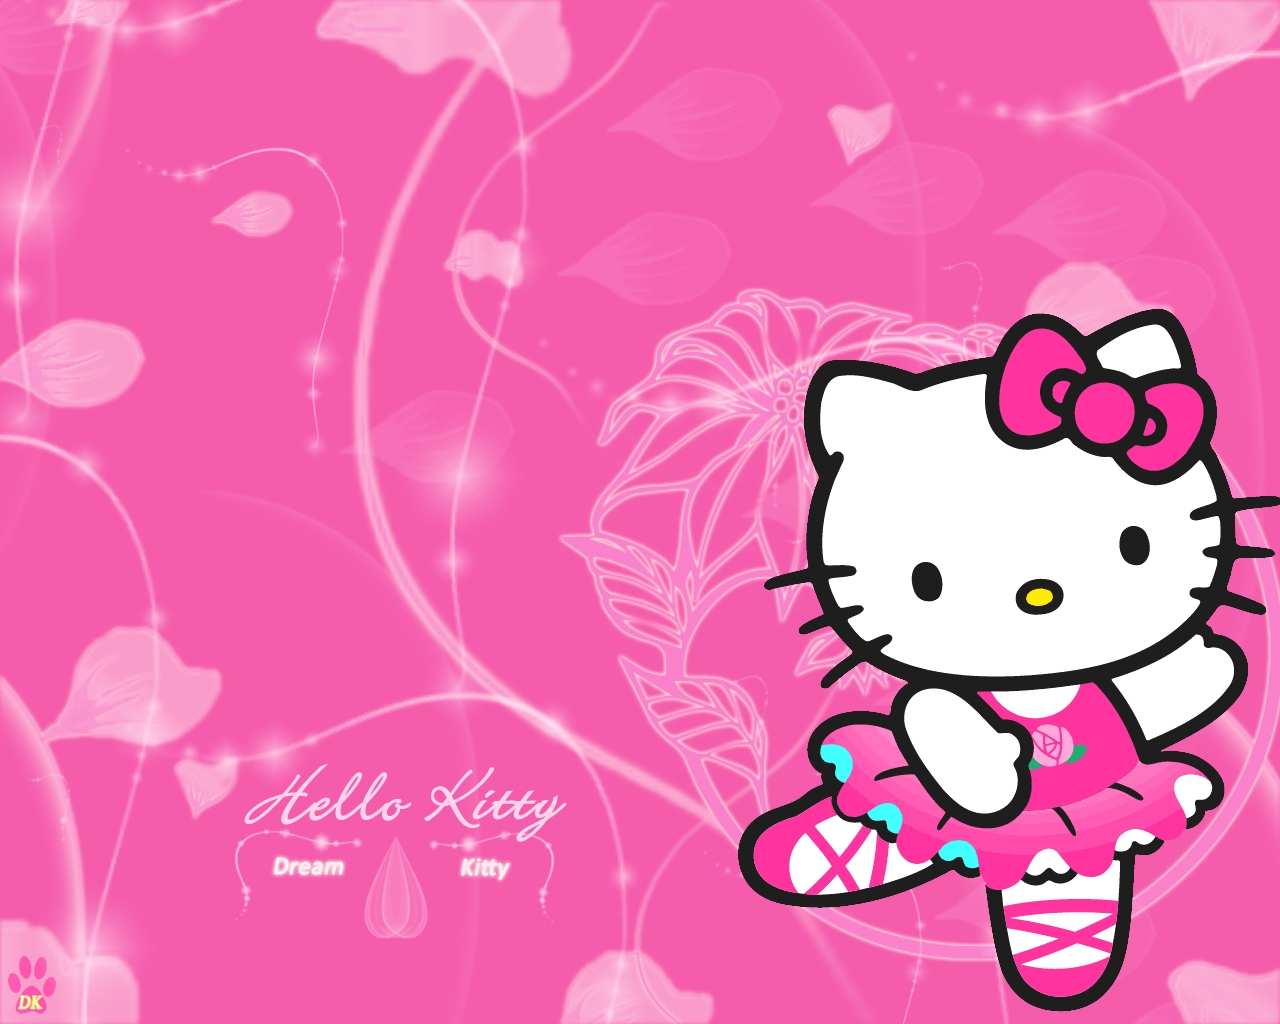 Cute Hello Kitty Backgrounds wallpaper Cute Hello Kitty Backgrounds 1280x1024